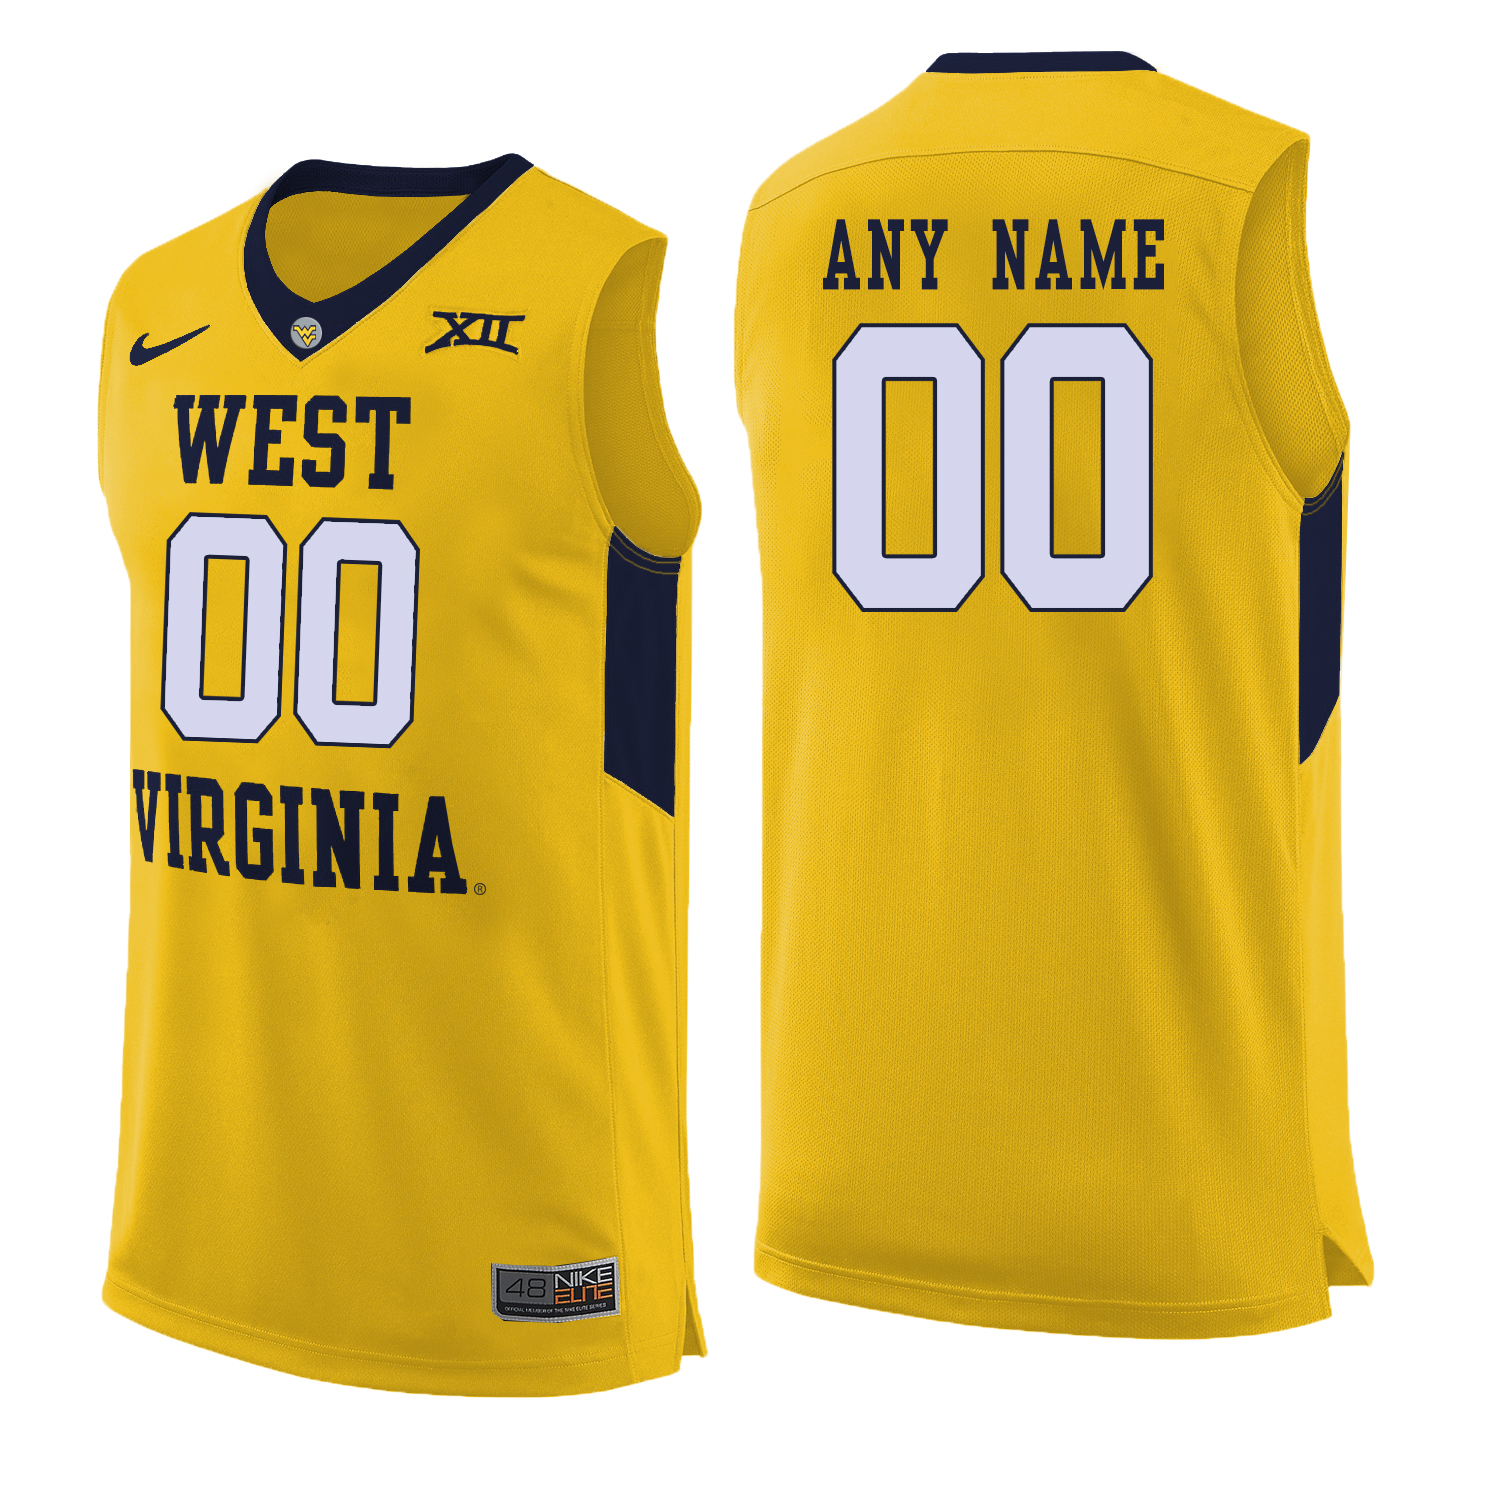 West Virginia Mountaineers Yellow Men's Customized College Basketball Jersey